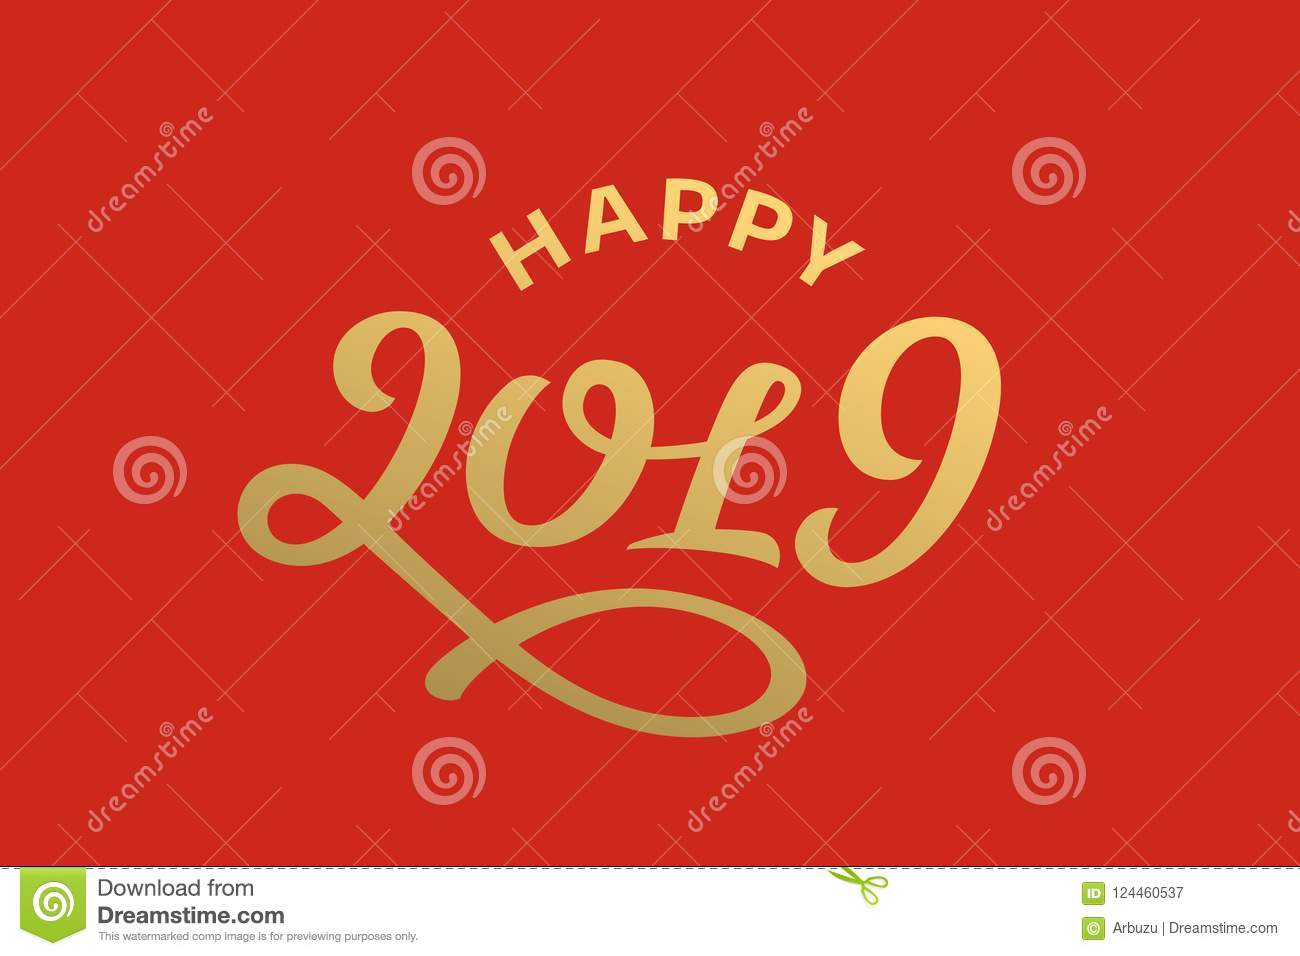 Happy new year 2019 lettering greeting card design stock vector download happy new year 2019 lettering greeting card design stock vector illustration of handwritten m4hsunfo